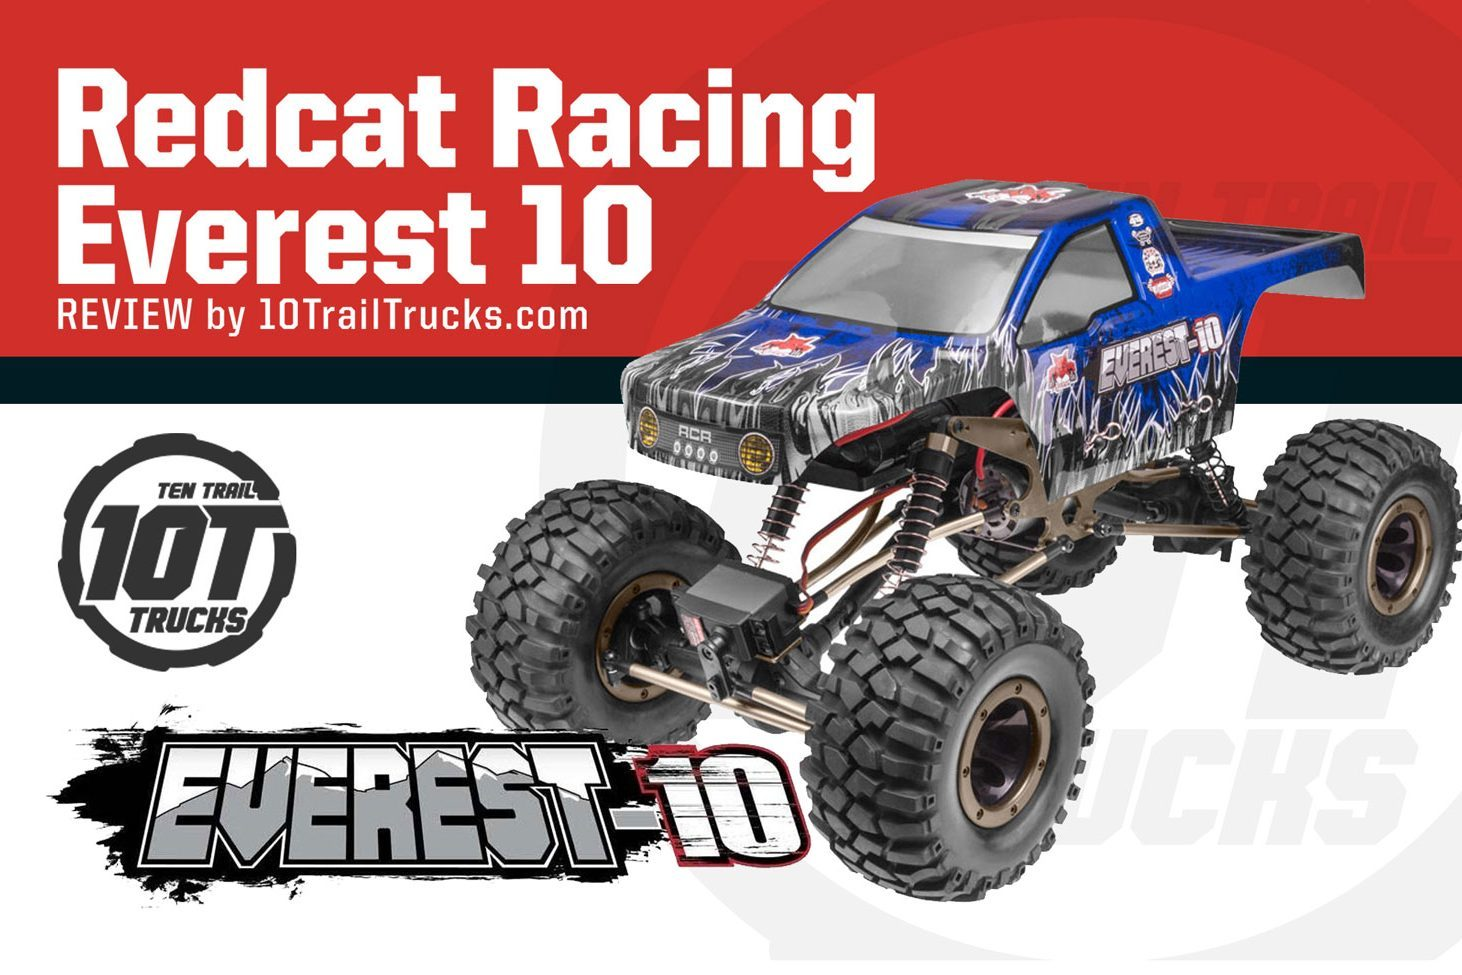 RedCat Racing Everest 10 Review